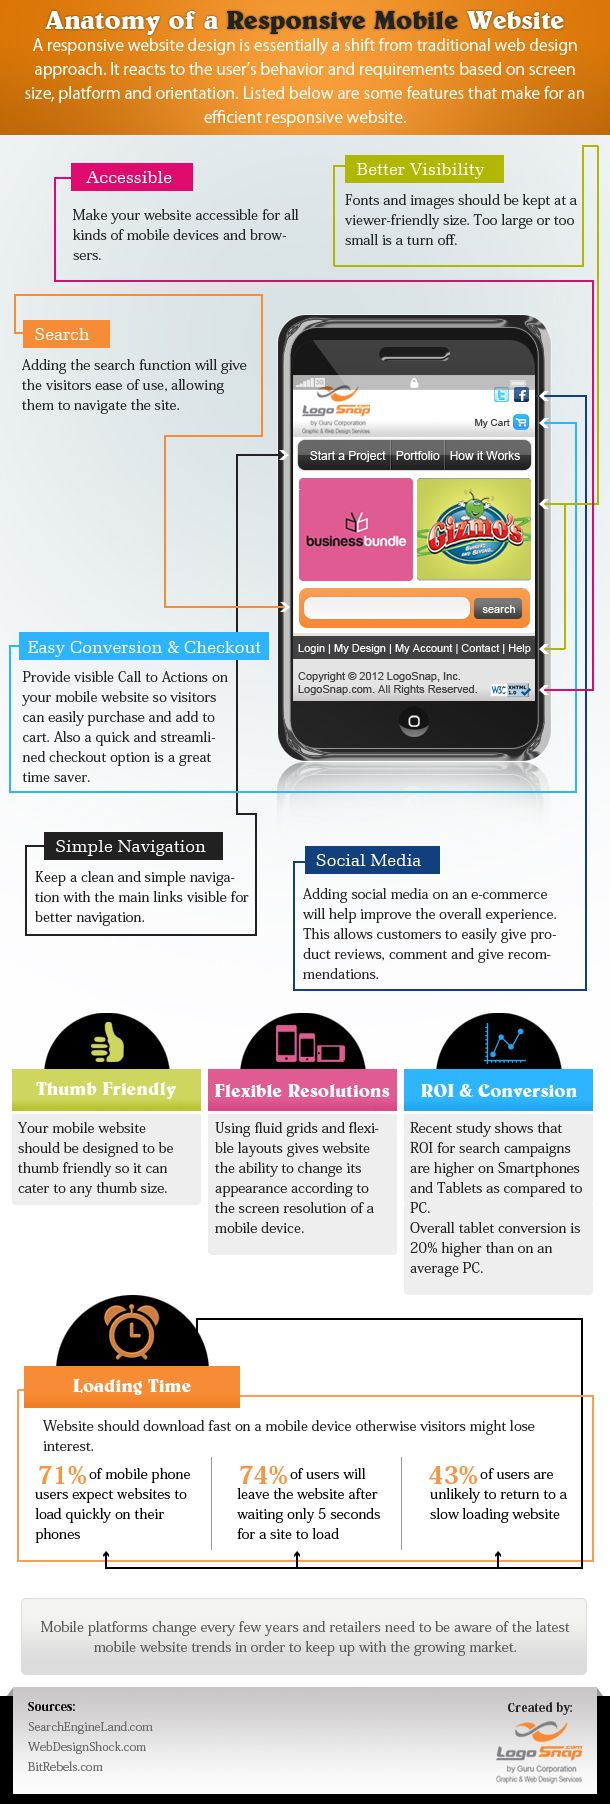 Structure of a Responsive Mobile Web Design